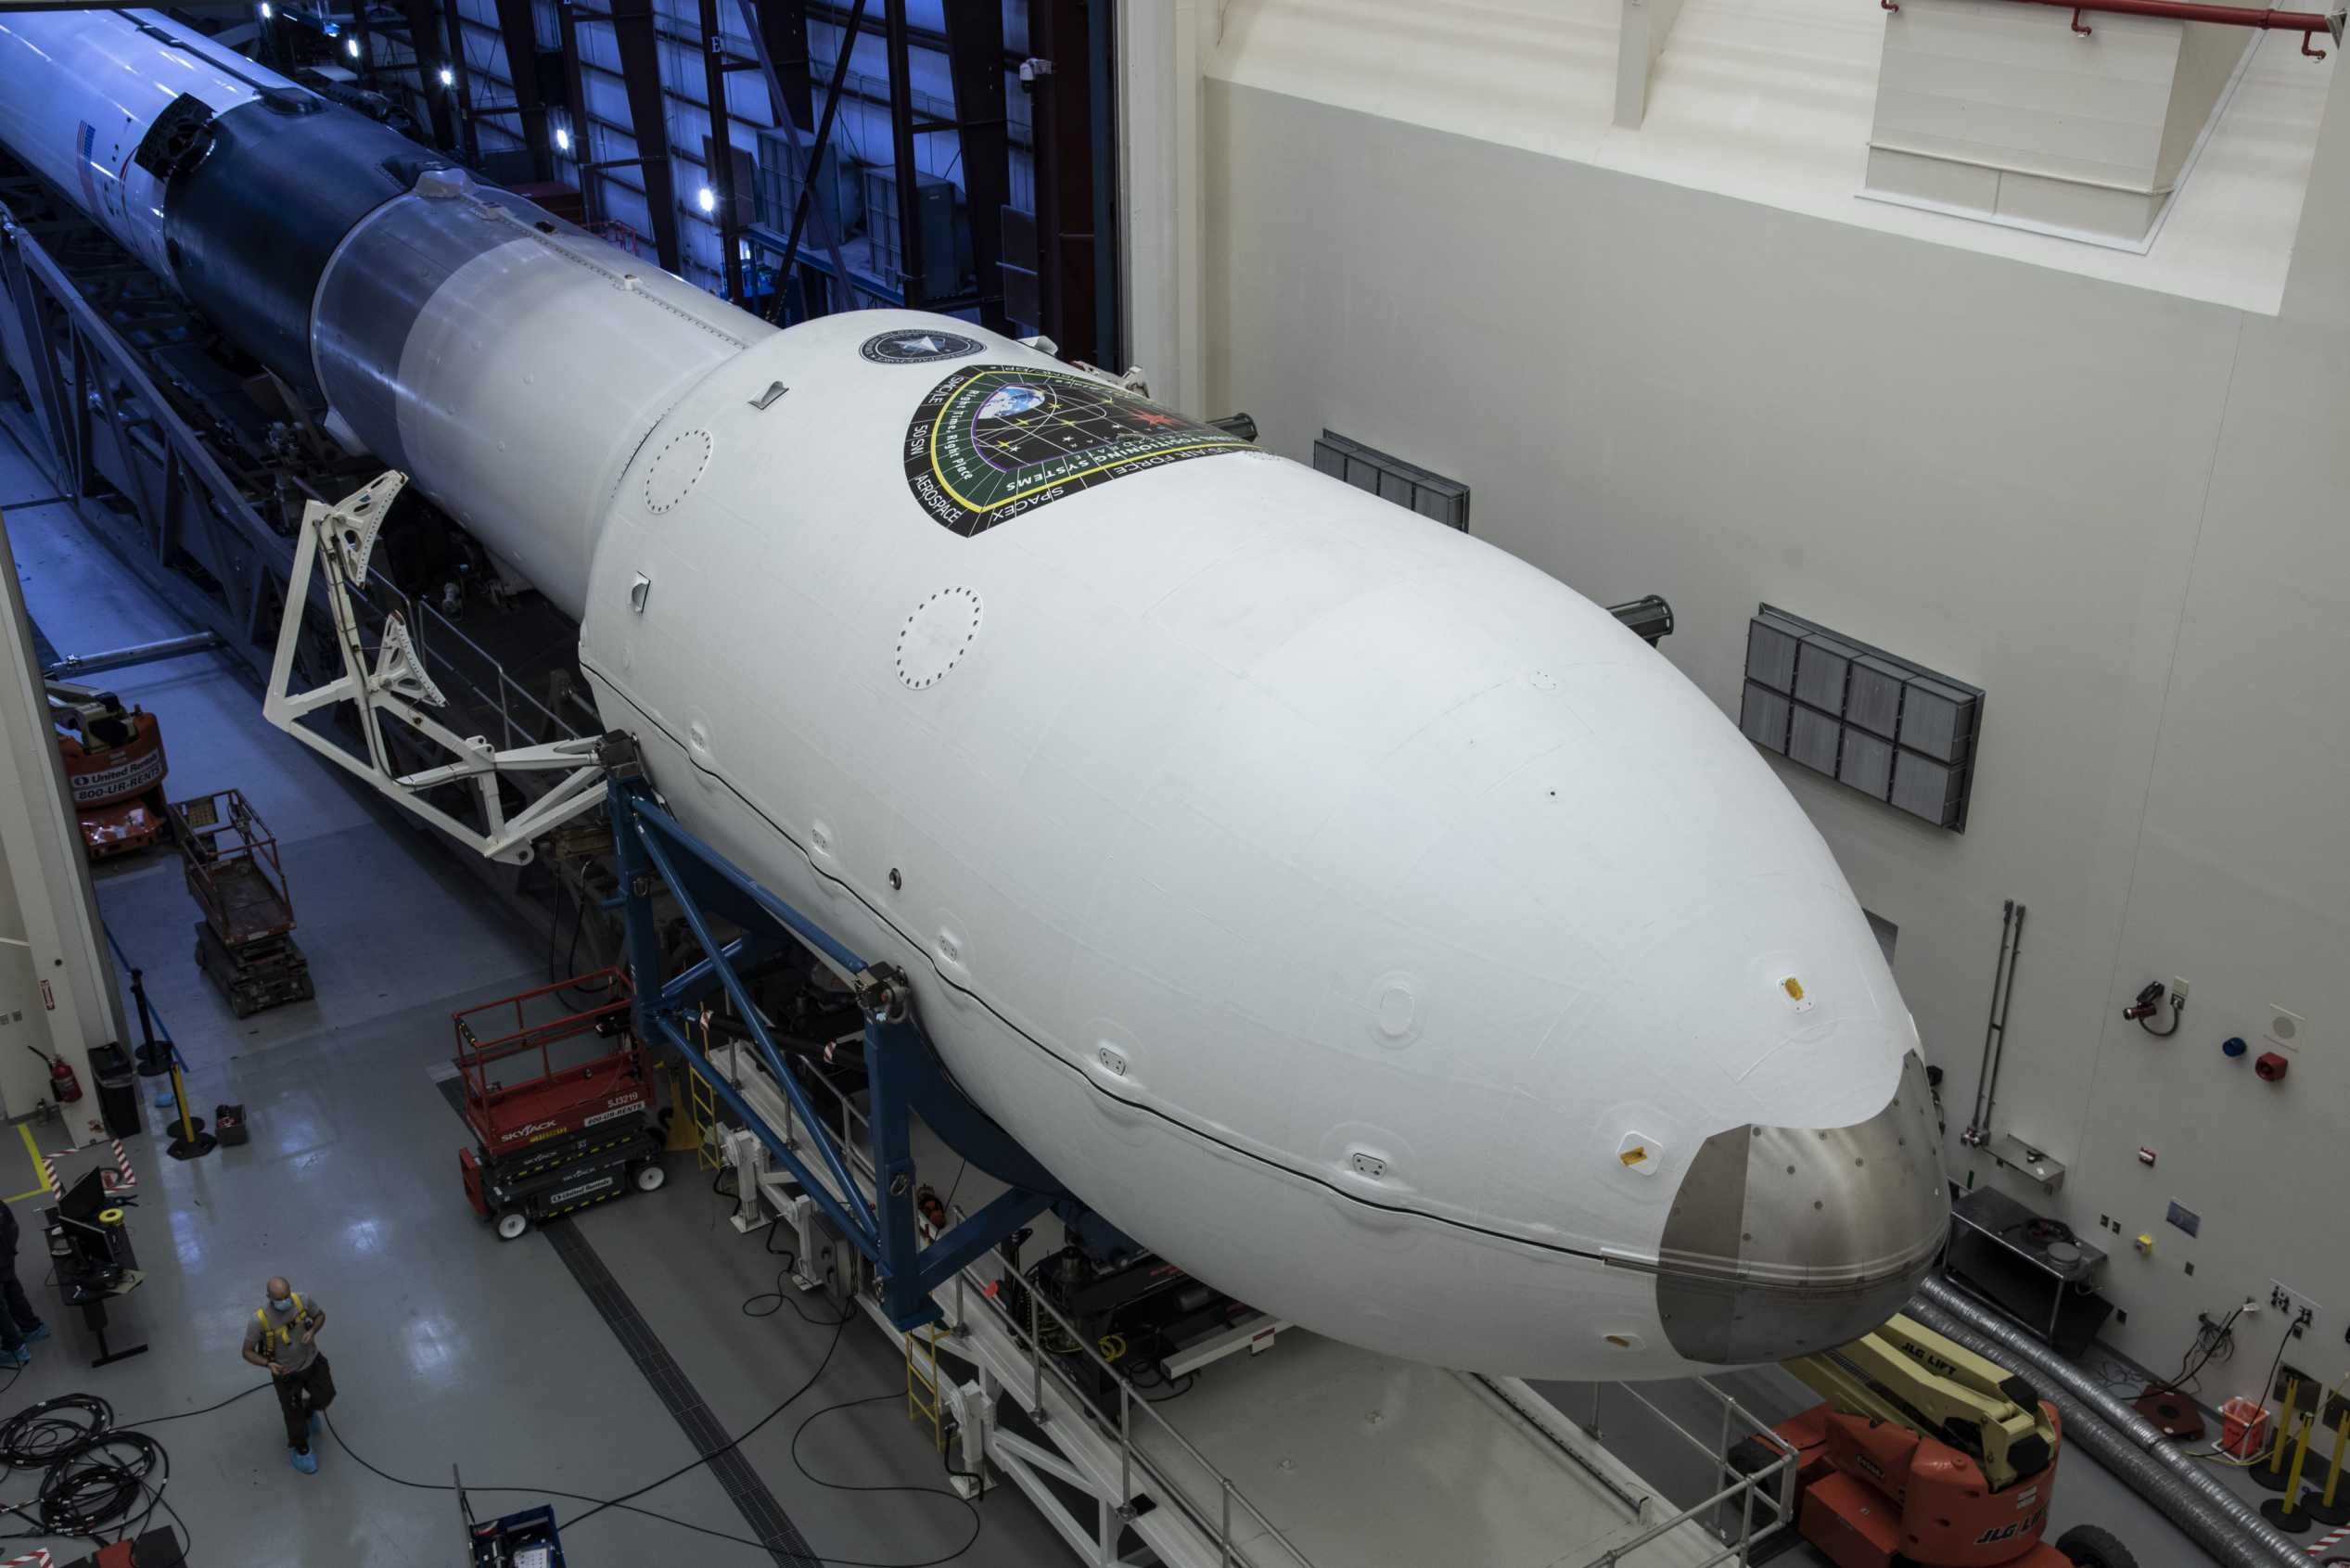 GPS III SV03 Falcon 9 B1060 LC-40 062930 (SpaceX) rollout 2 (c)